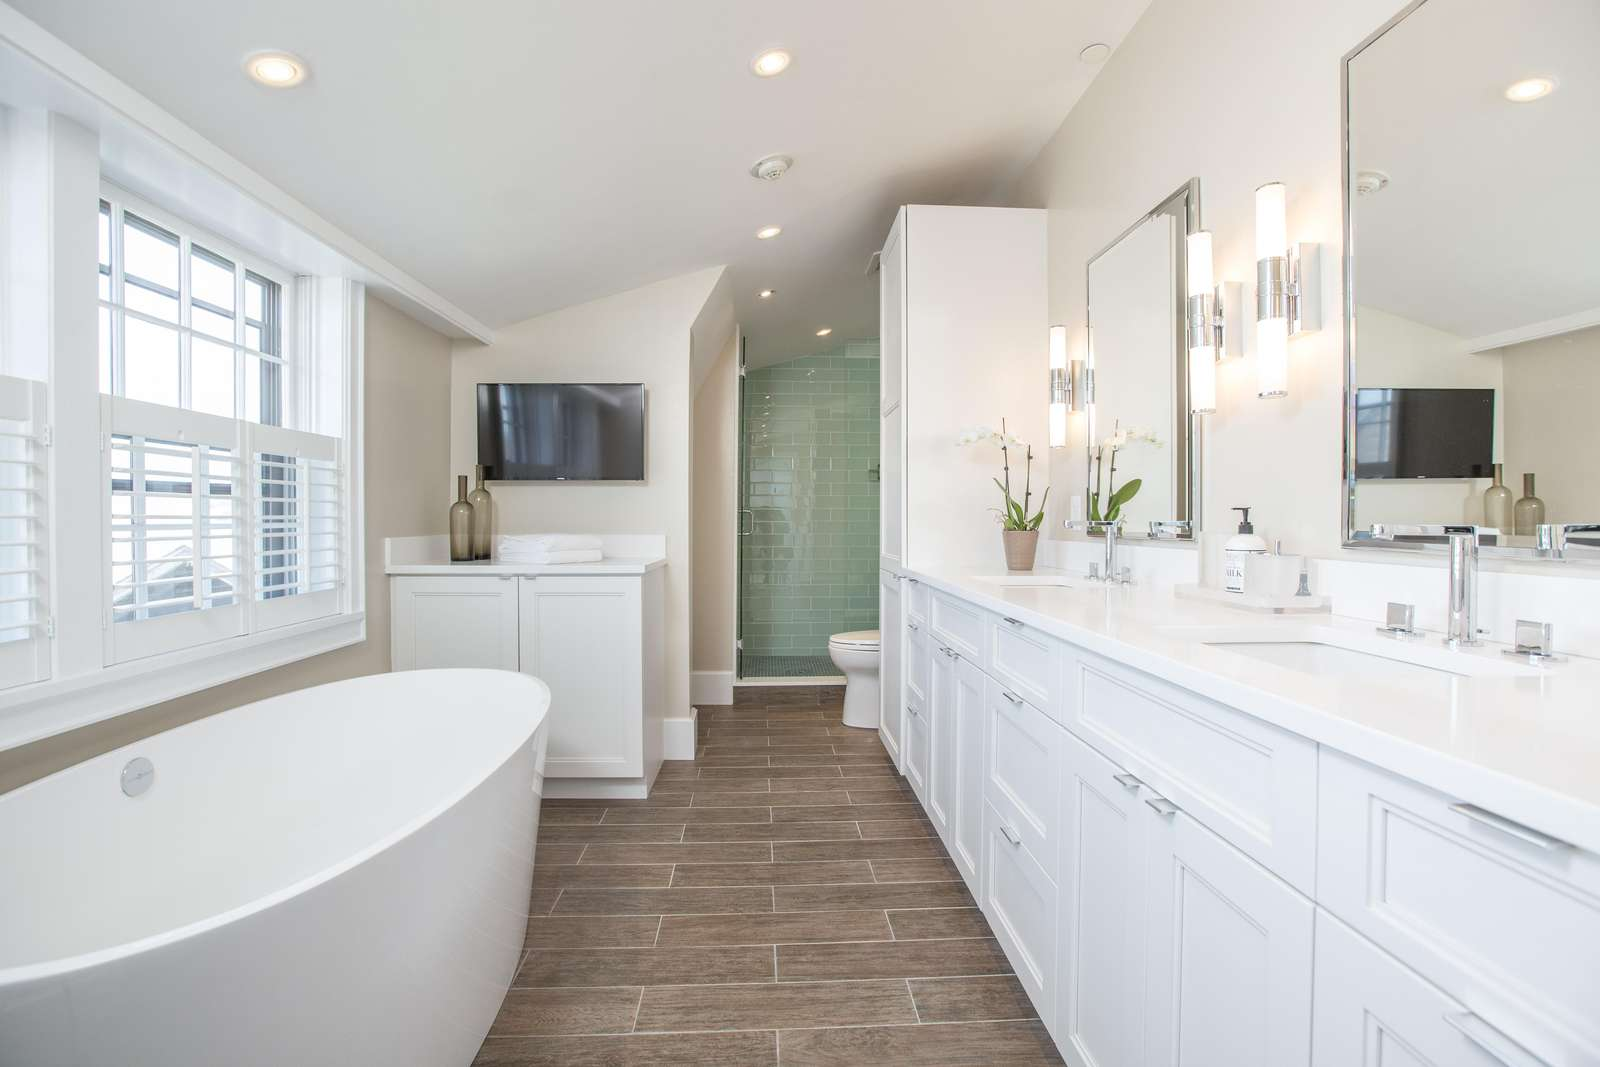 Master bathroom with dual vanity, tub, LED TV and elegant tiled shower